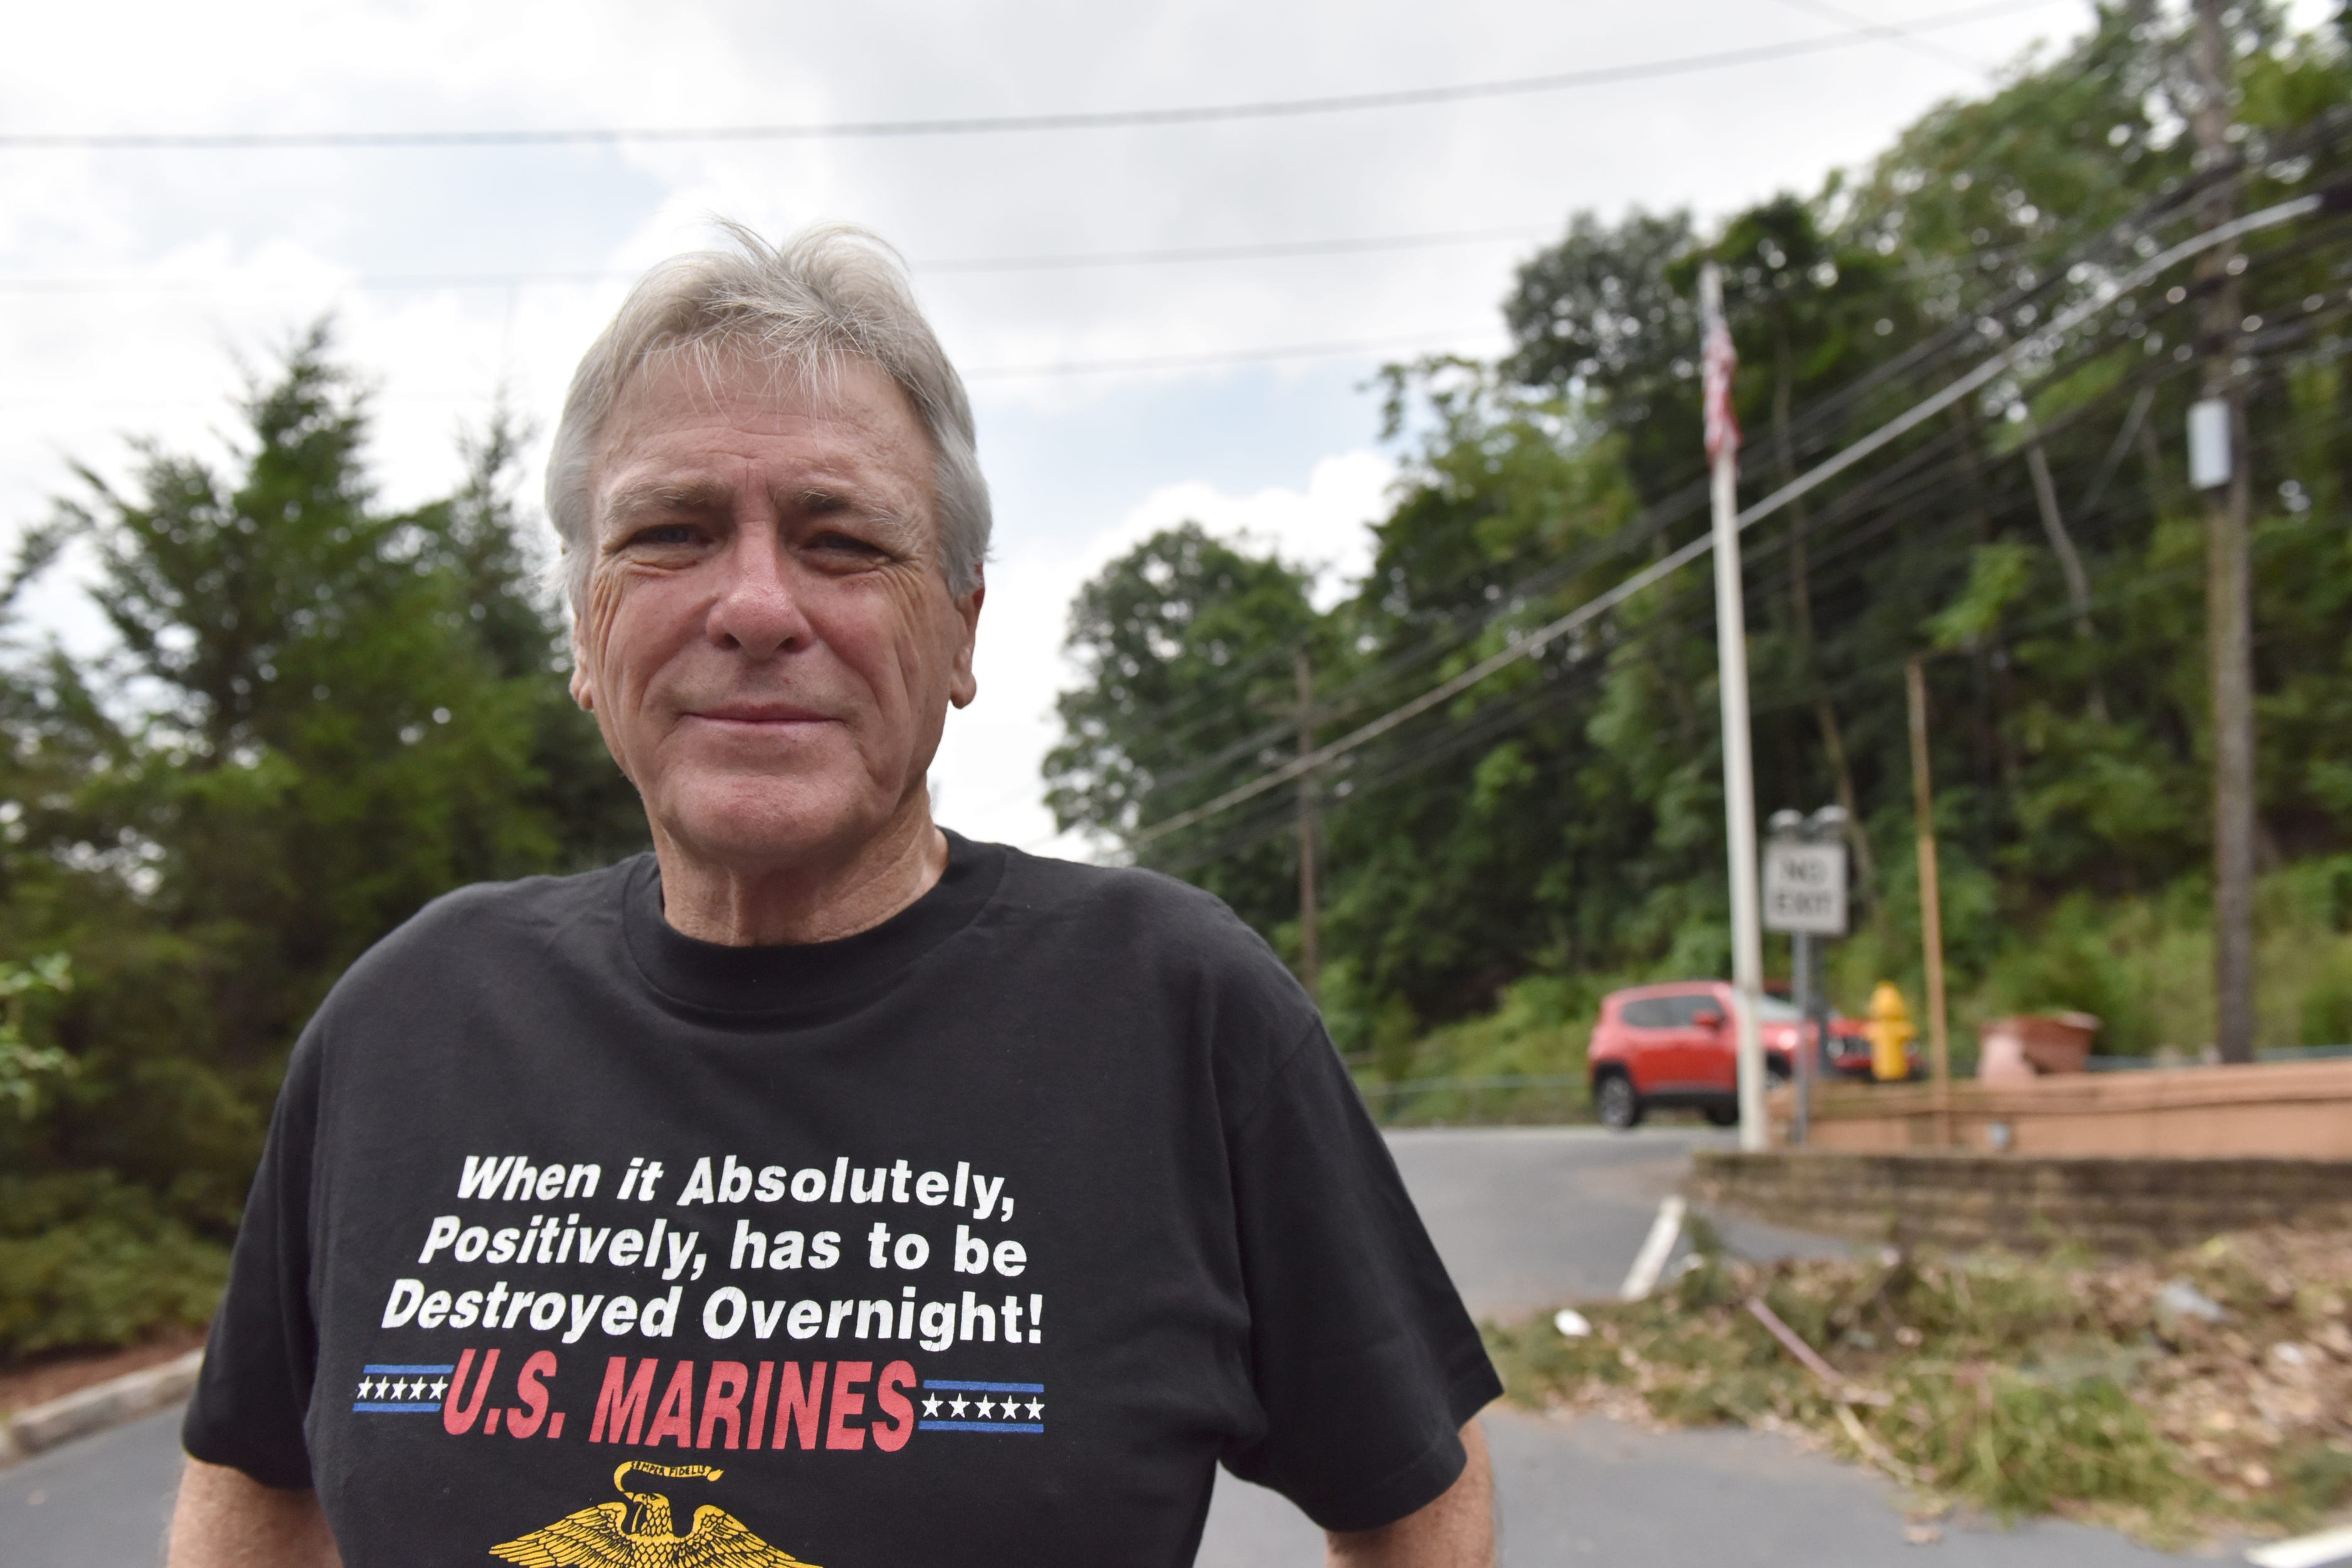 'I won't stand for it': Ex-Marine pulls down mysterious Confederate flag in New Jersey town